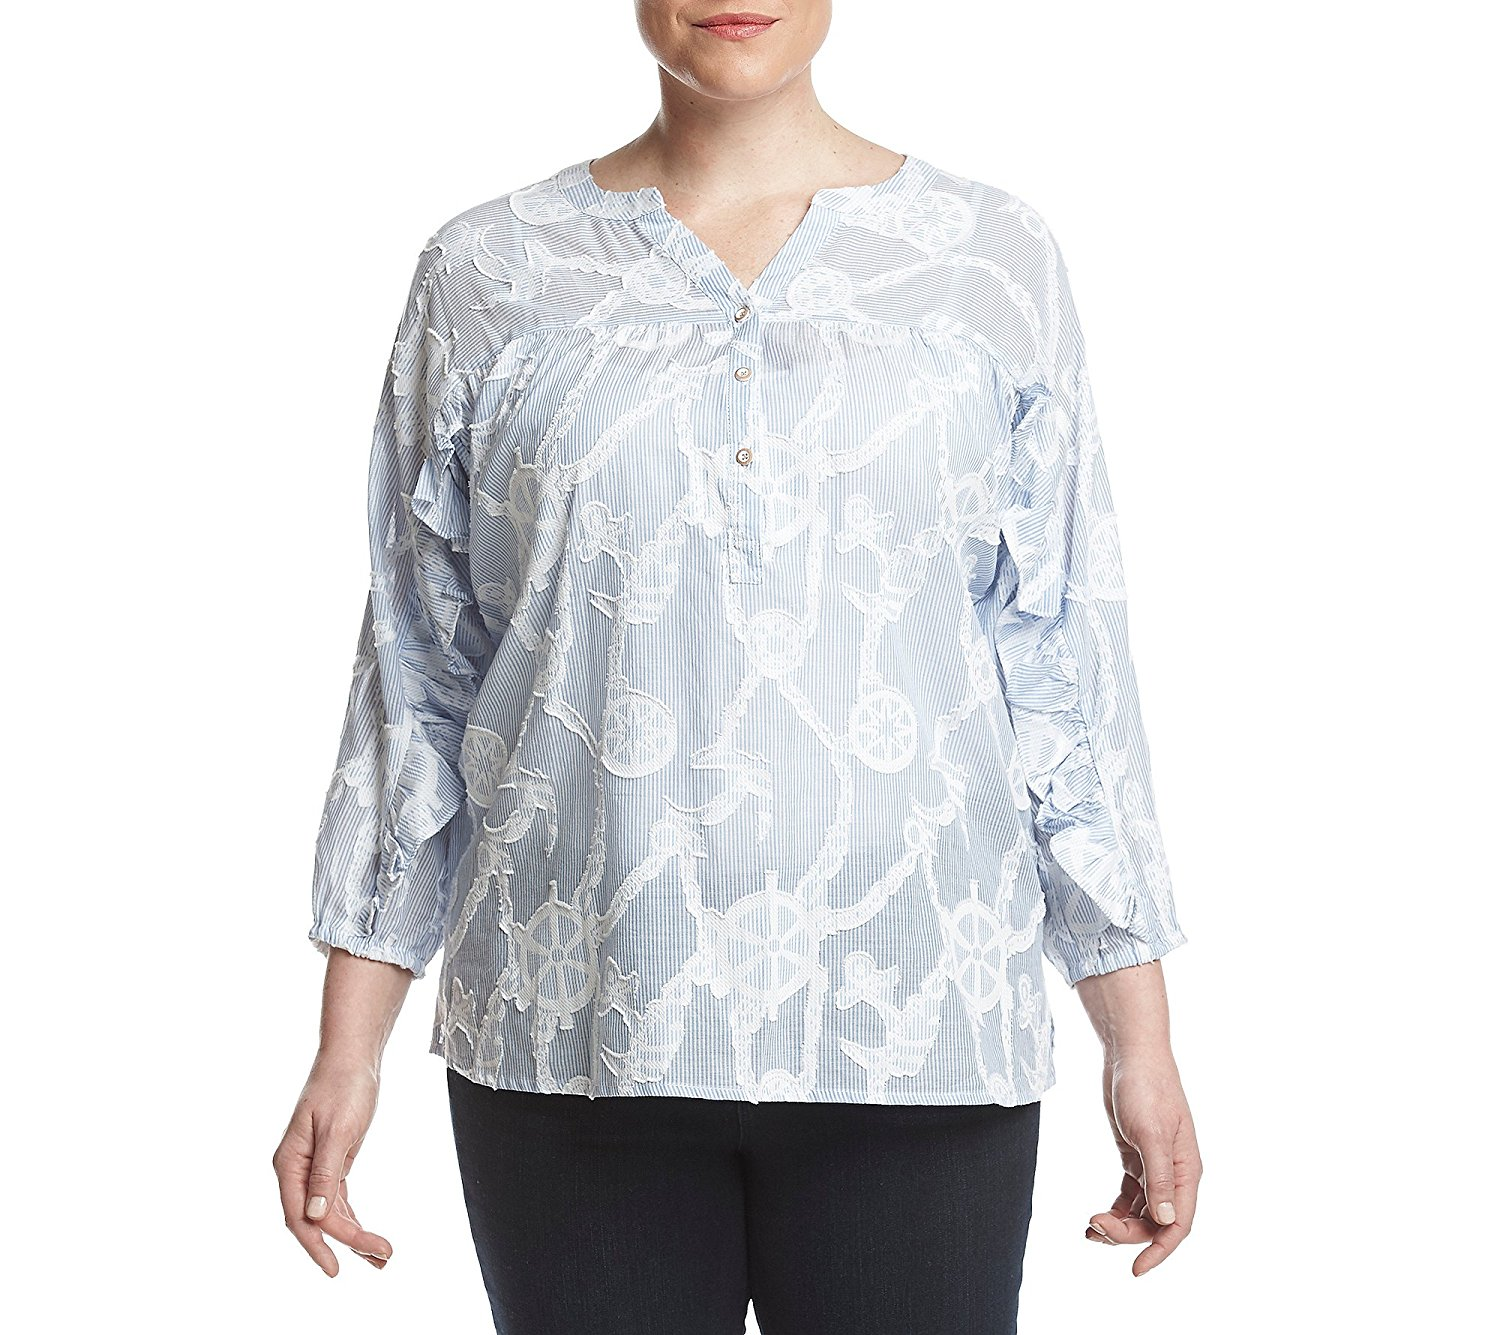 9b91d17bc5d3e0 Cheap Nautical Blouse, find Nautical Blouse deals on line at Alibaba.com